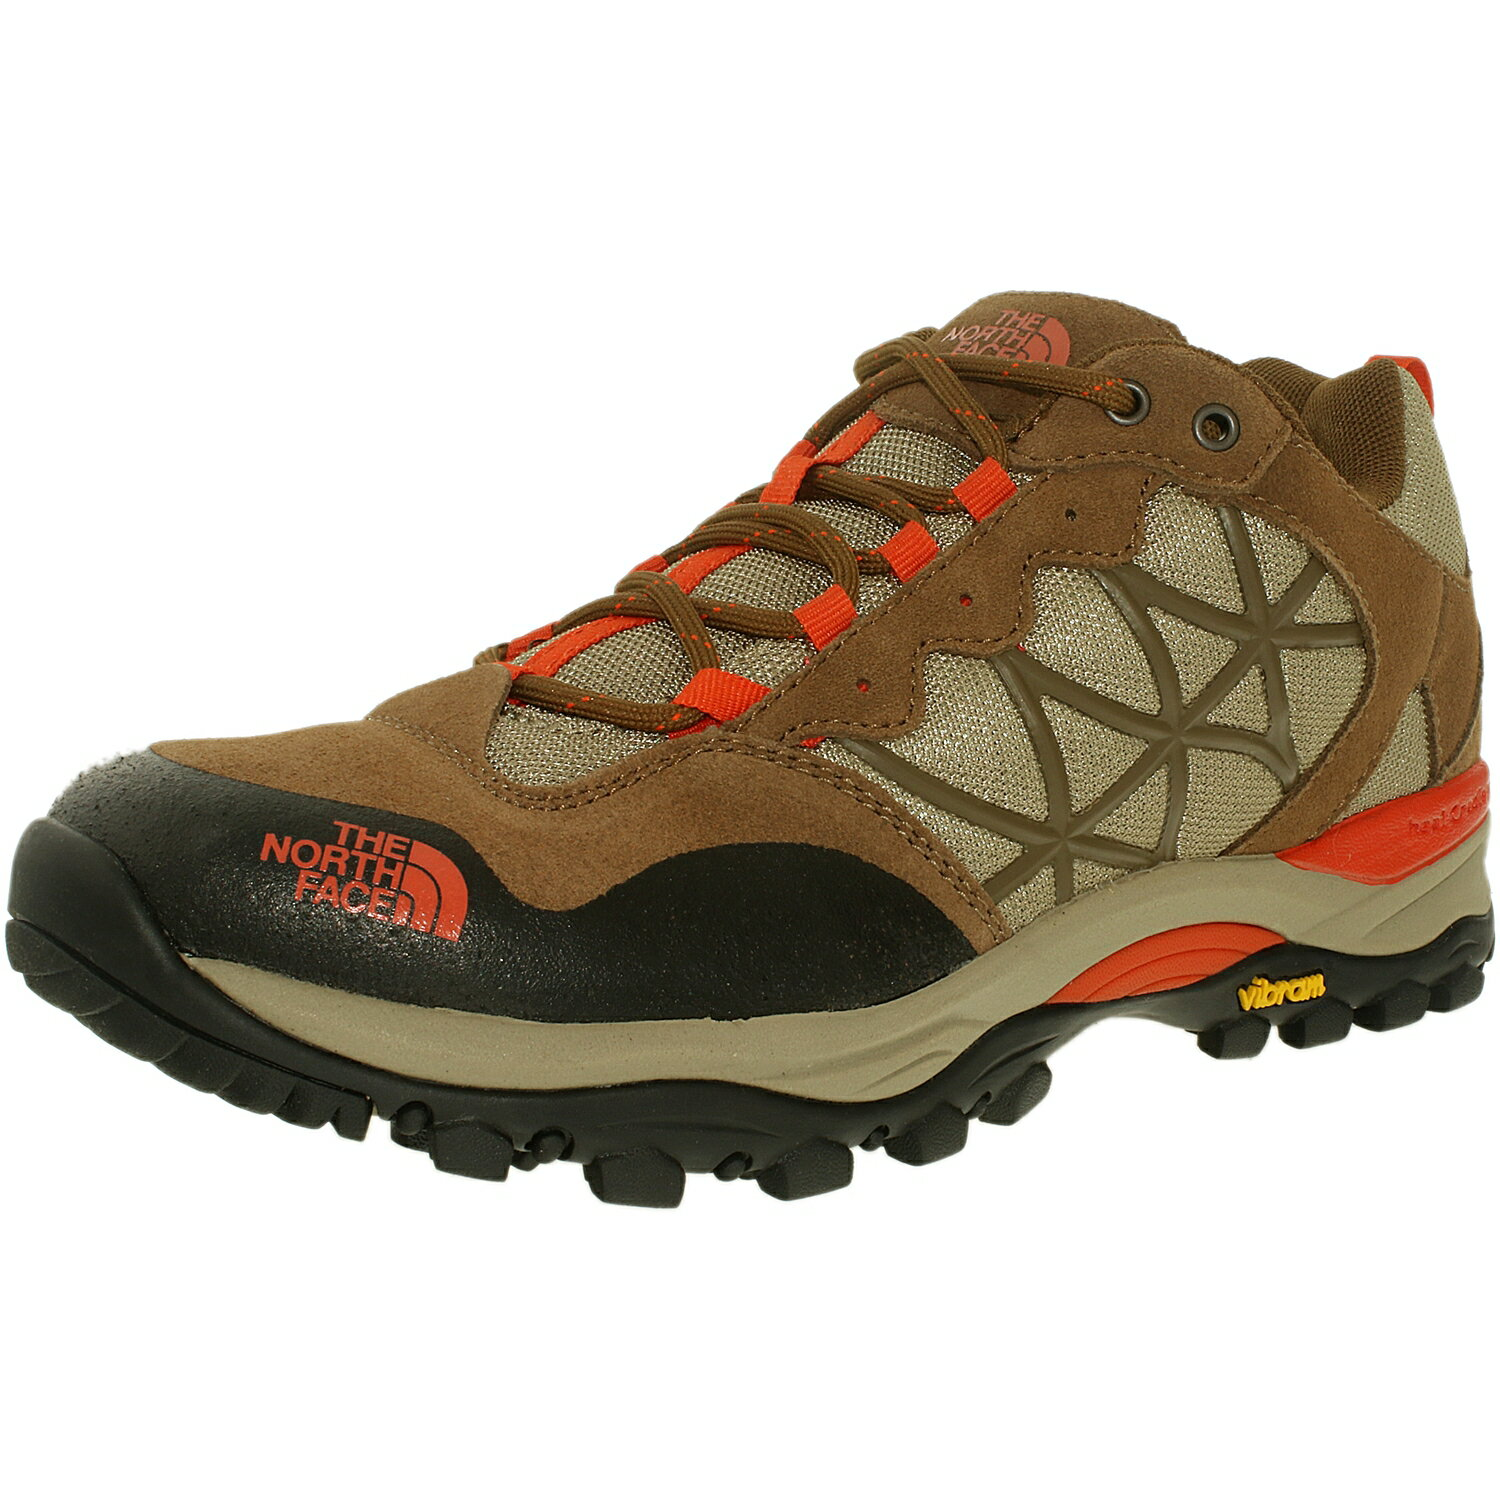 The North Face Women's Storm Low Top Fabric Hiking Shoe 0